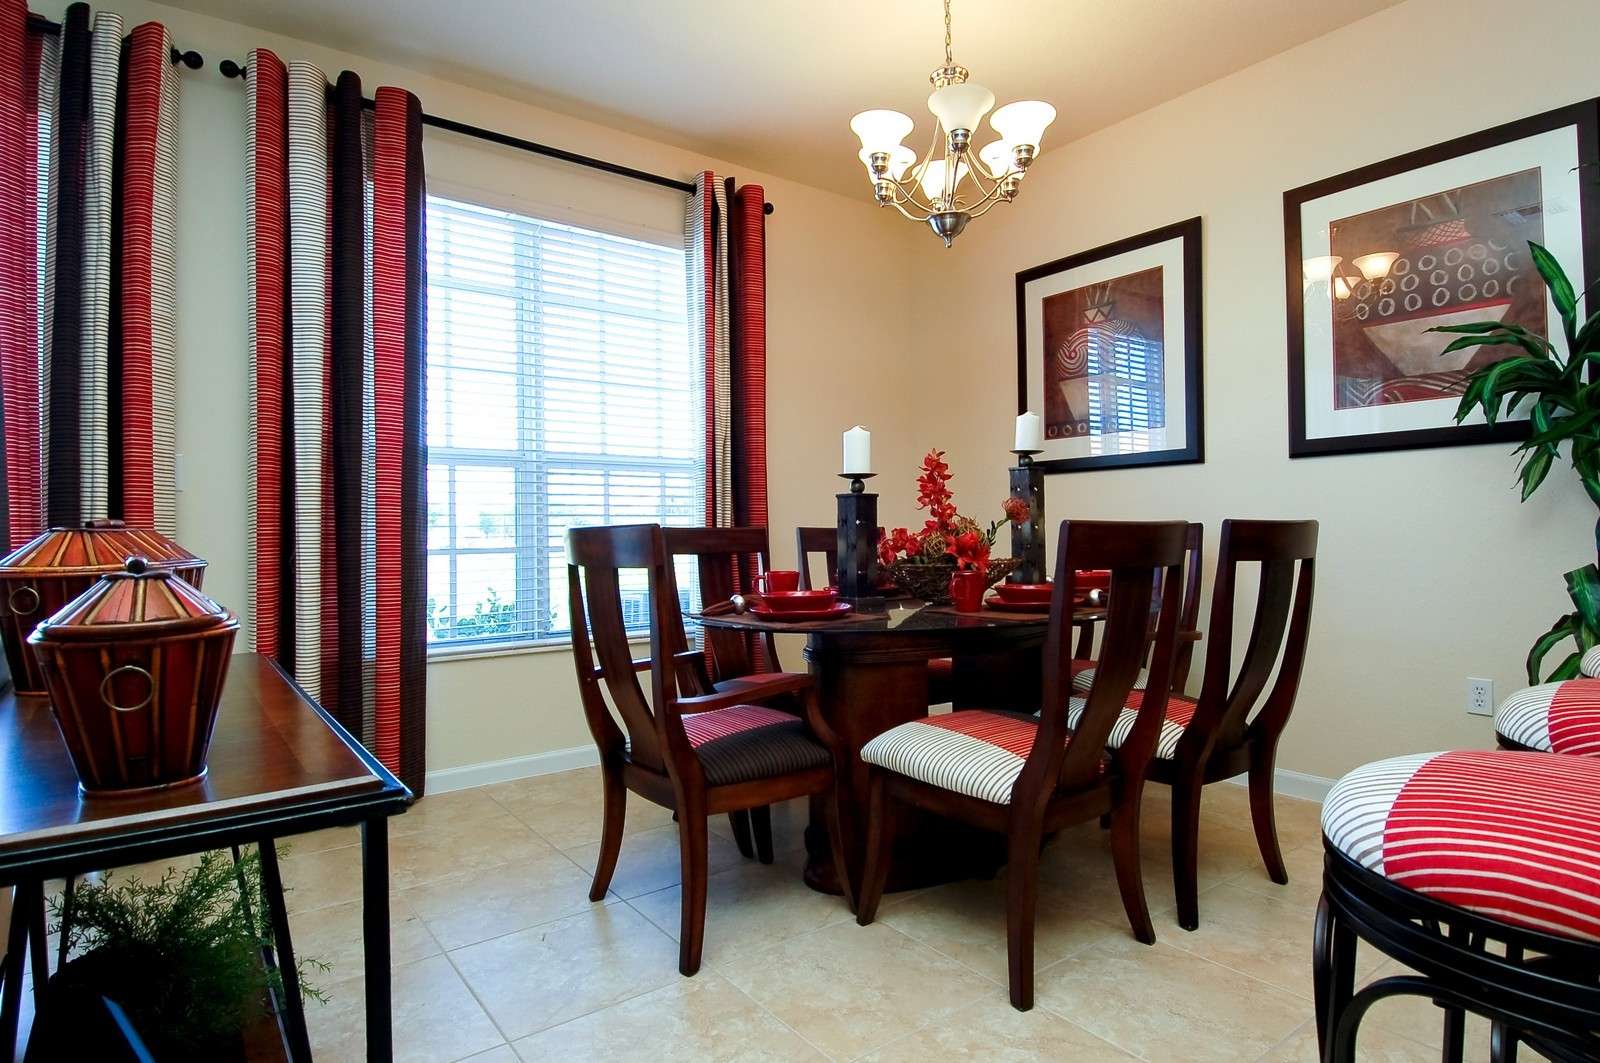 Real Estate Photography - 3169 NW 32nd St, Cayman Model, Oakland Park, FL, 33309 - Dining Room